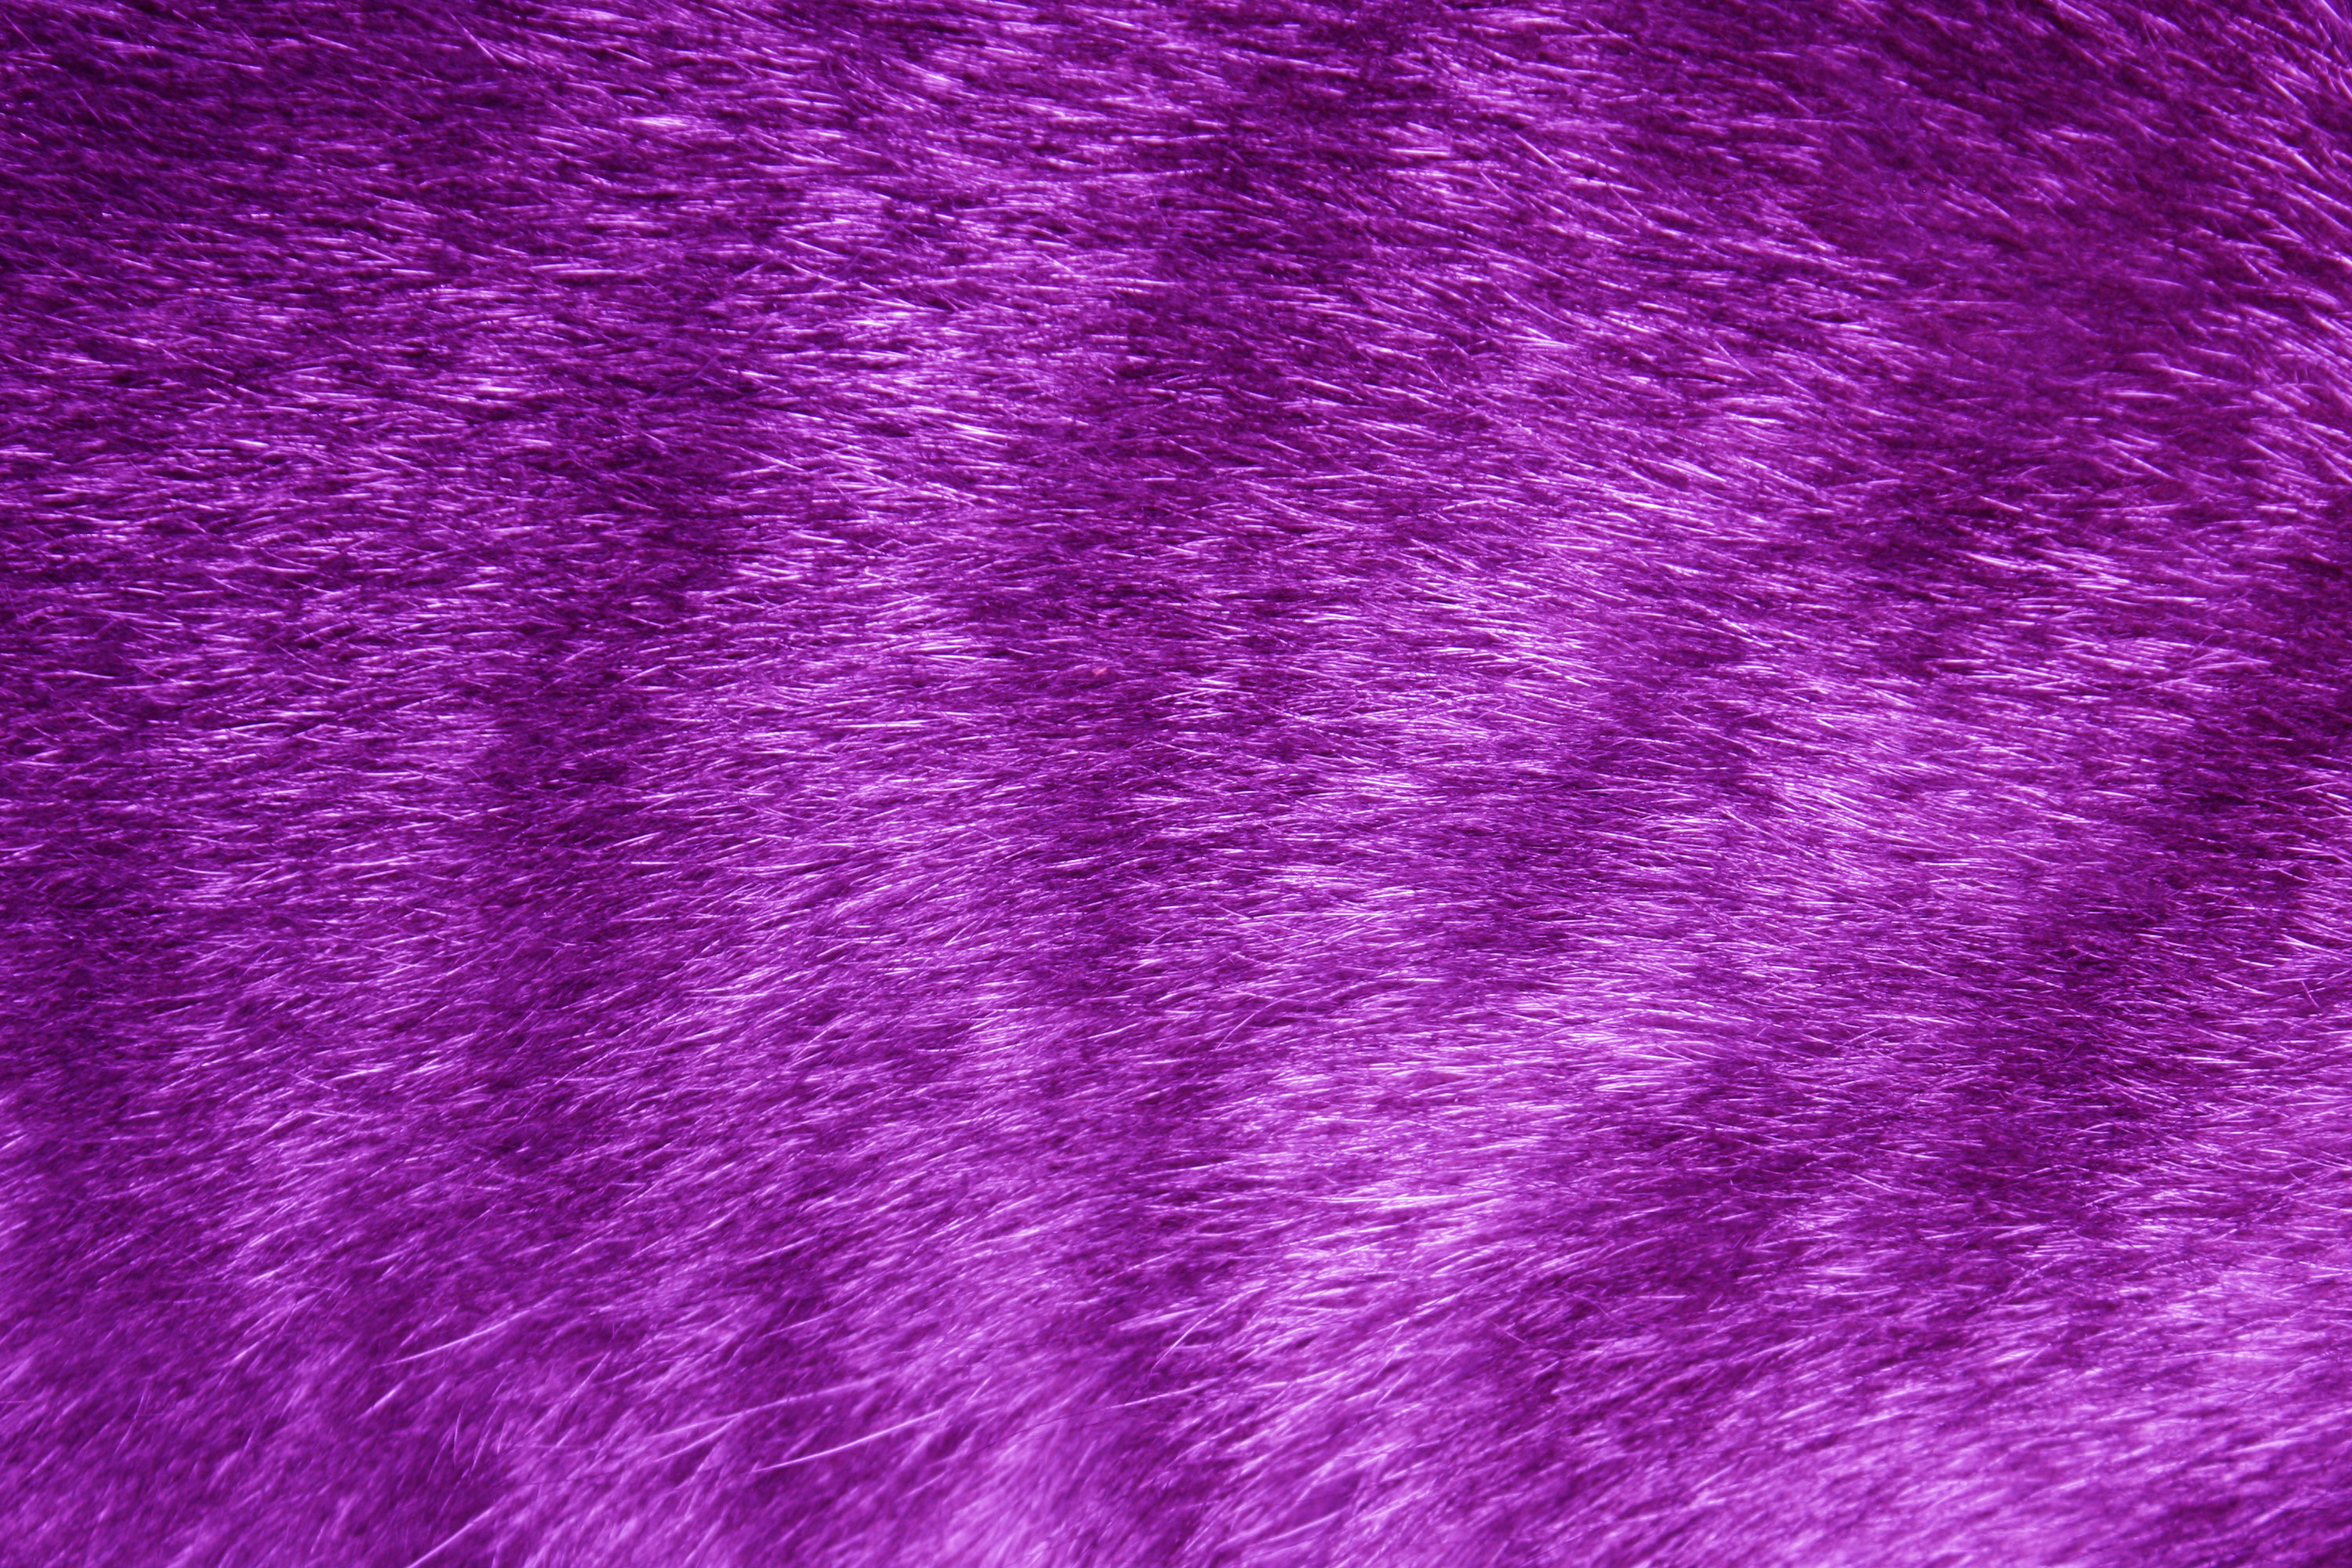 Purple Tabby Fur Texture Picture Photograph Photos Public 3000x2000